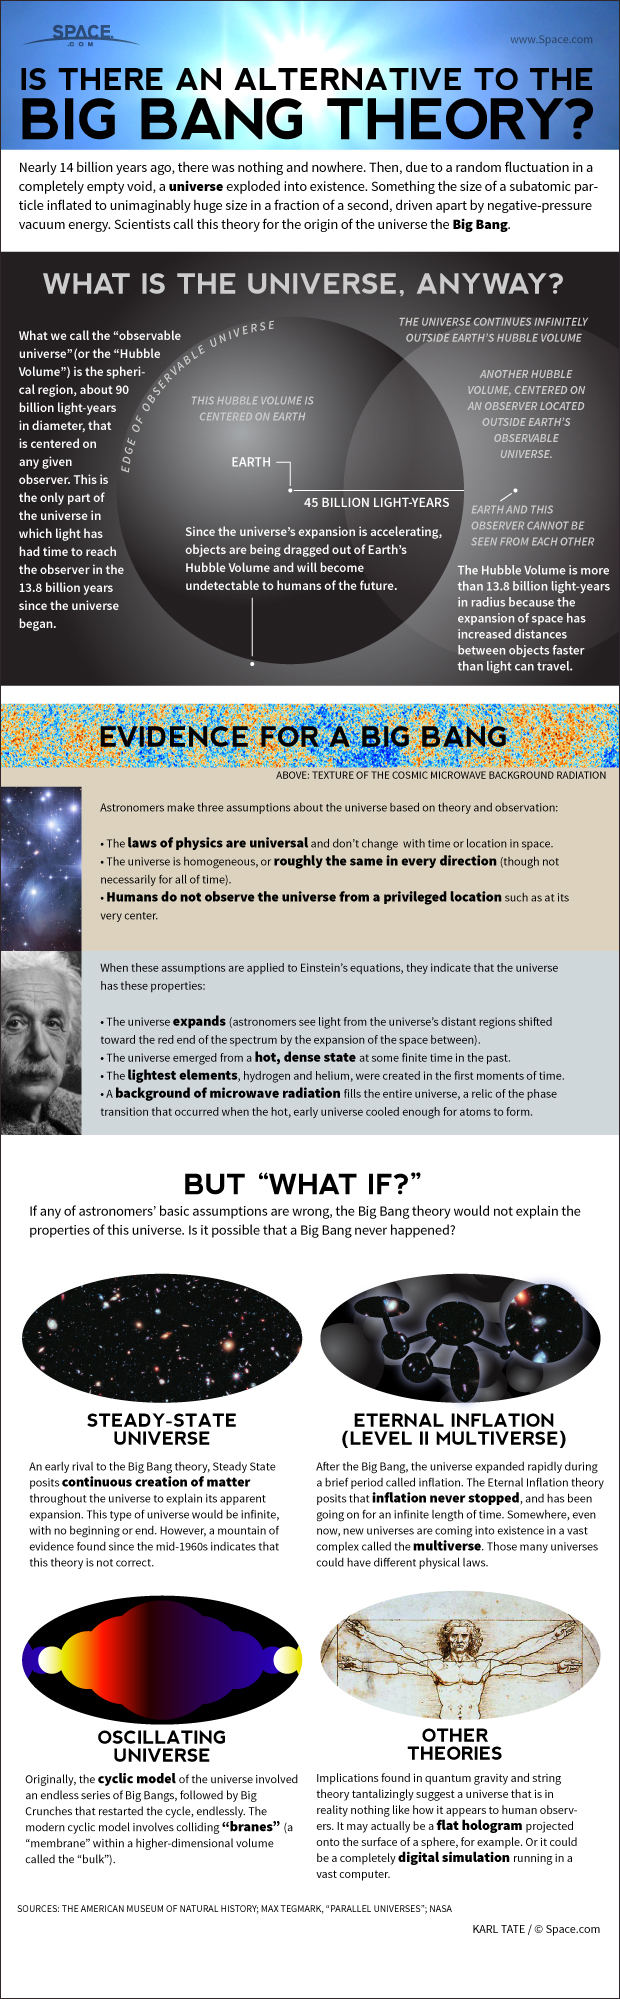 Explanation of and alternatives to the Big Bang theory.